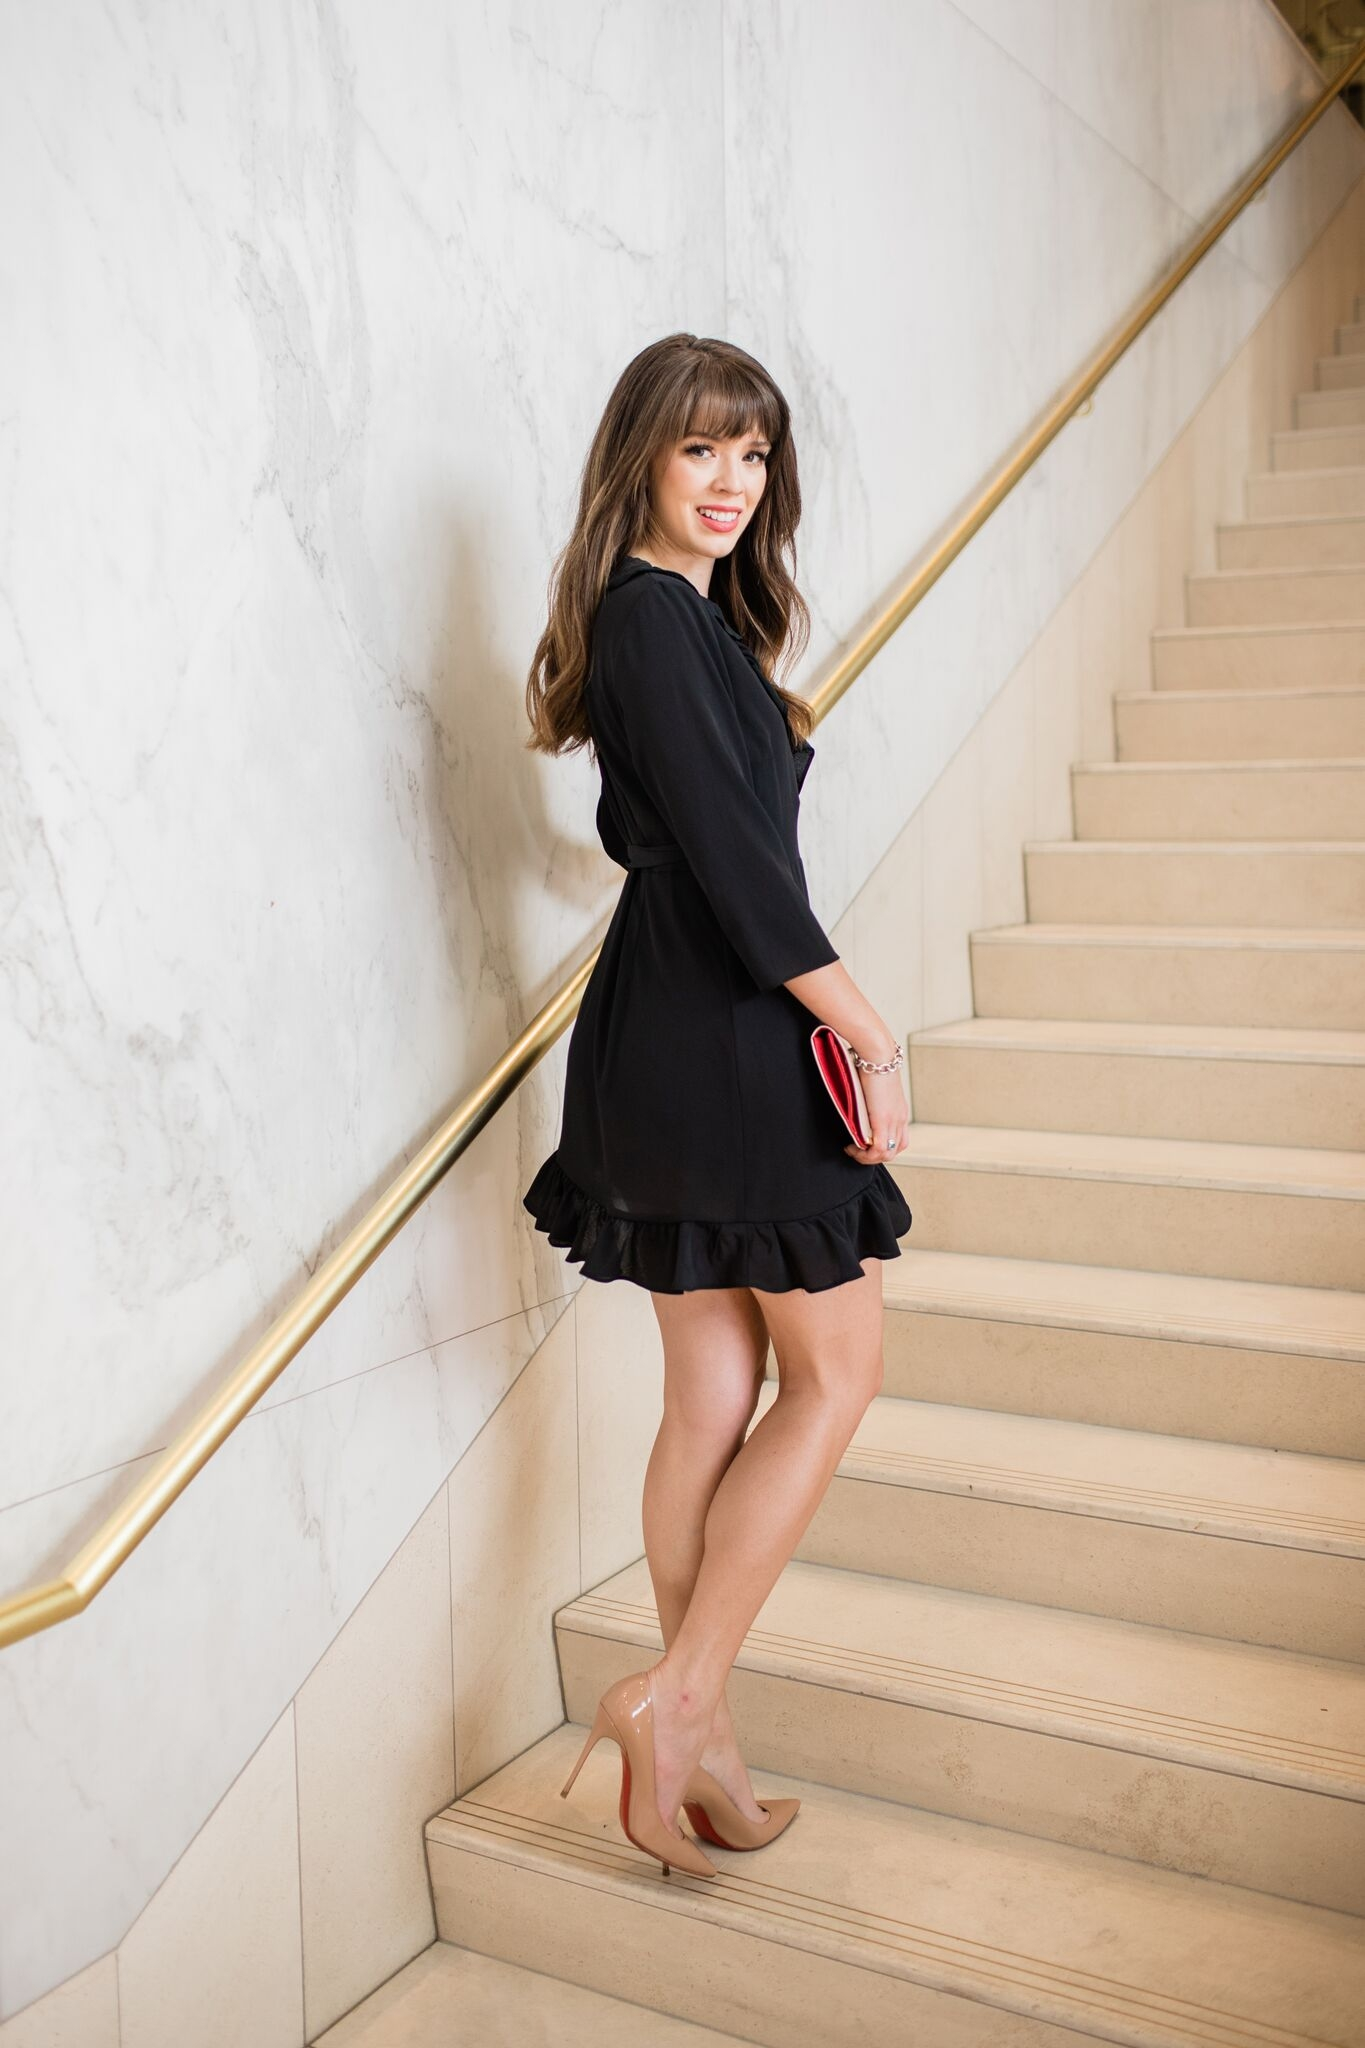 The perfect little black dress for spring weddings tayler malott the perfect little black dress for spring weddings ombrellifo Image collections